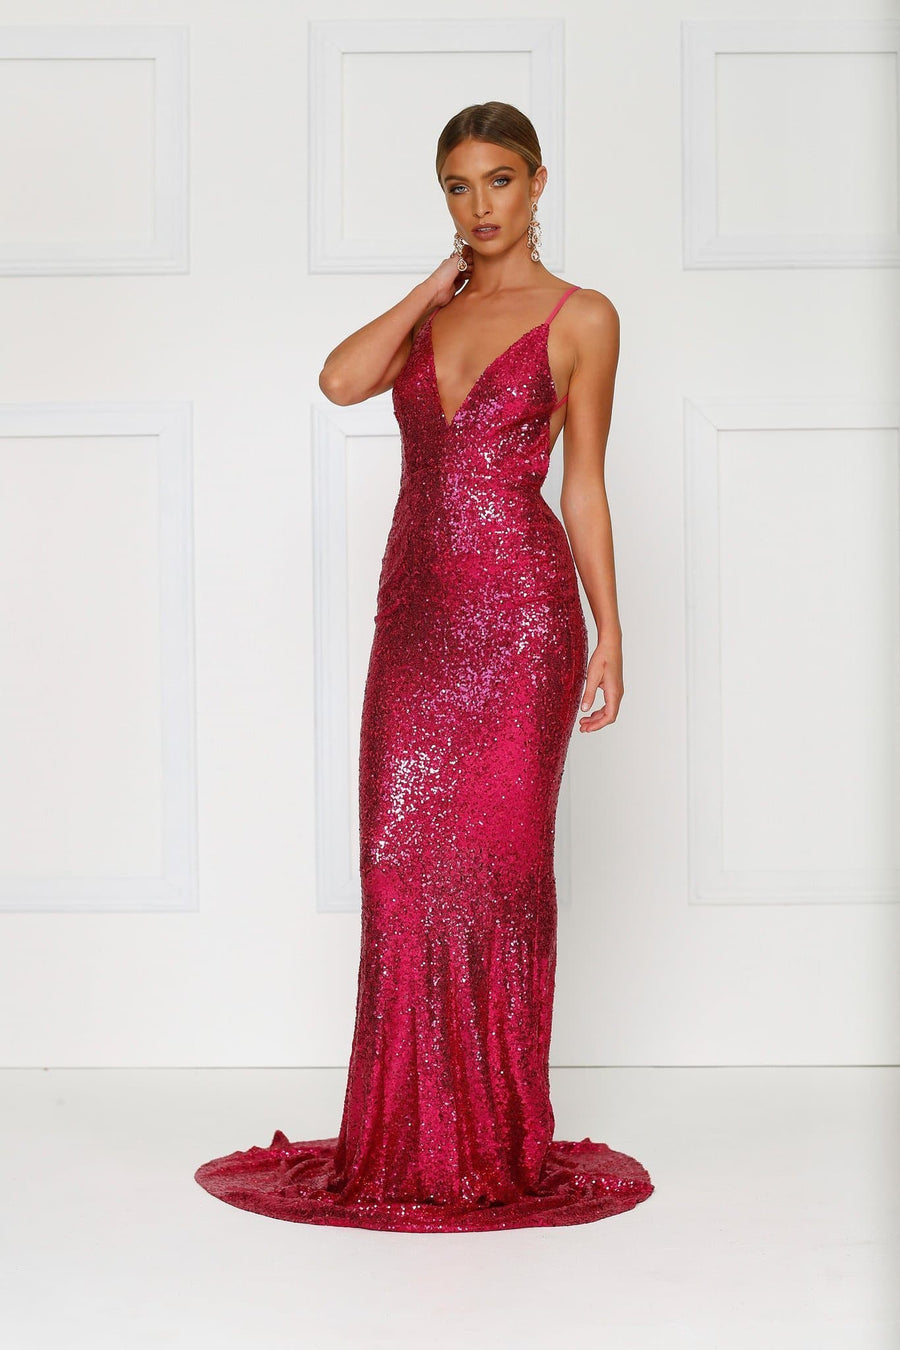 Yassmine Mermaid Gown - Hot Pink